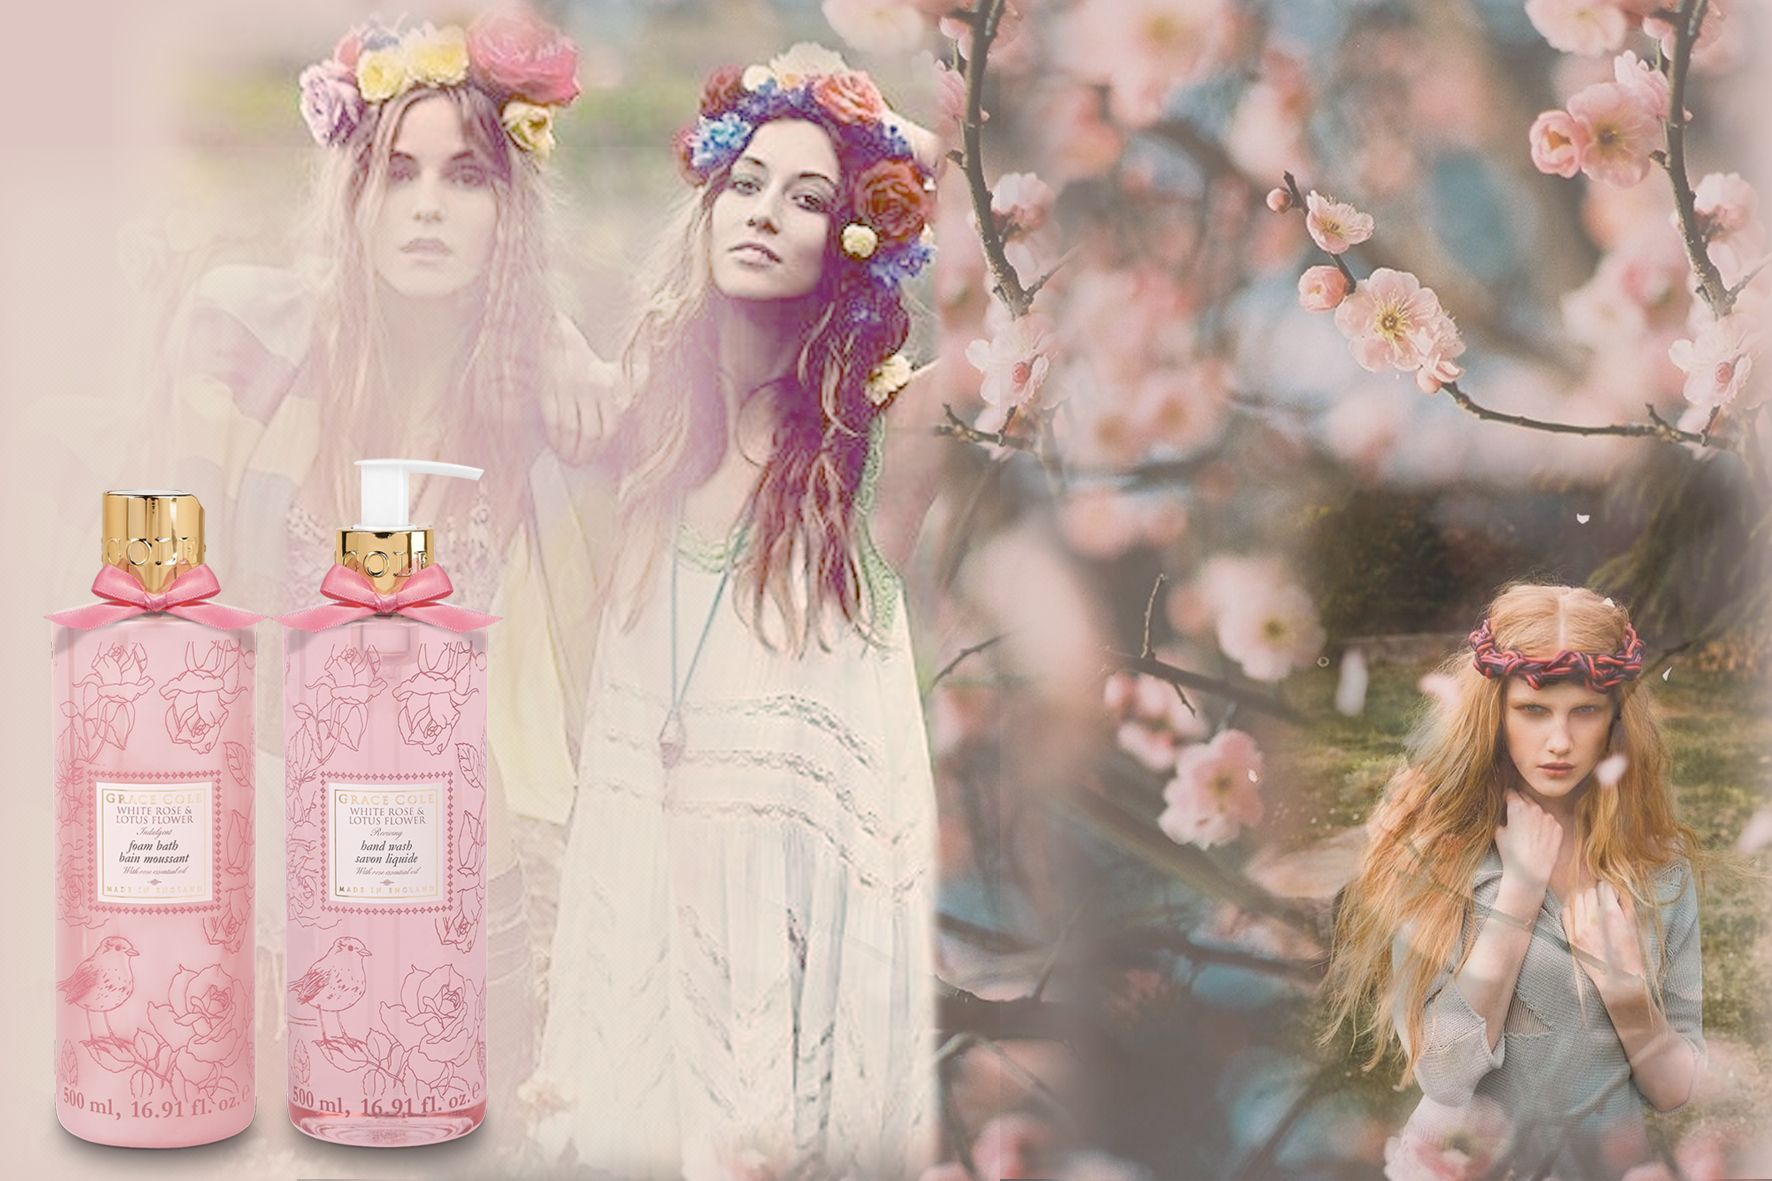 Have you tried our Floral Collection yet? This exquisite collection is definitely one to try, relax, unwind and enjoy our beautifully feminine florals in a range of marvellous scents. Love the Grace Cole team. X   http://www.gracecole.co.uk/index.php/our-ranges/for-women/floral-collection.html